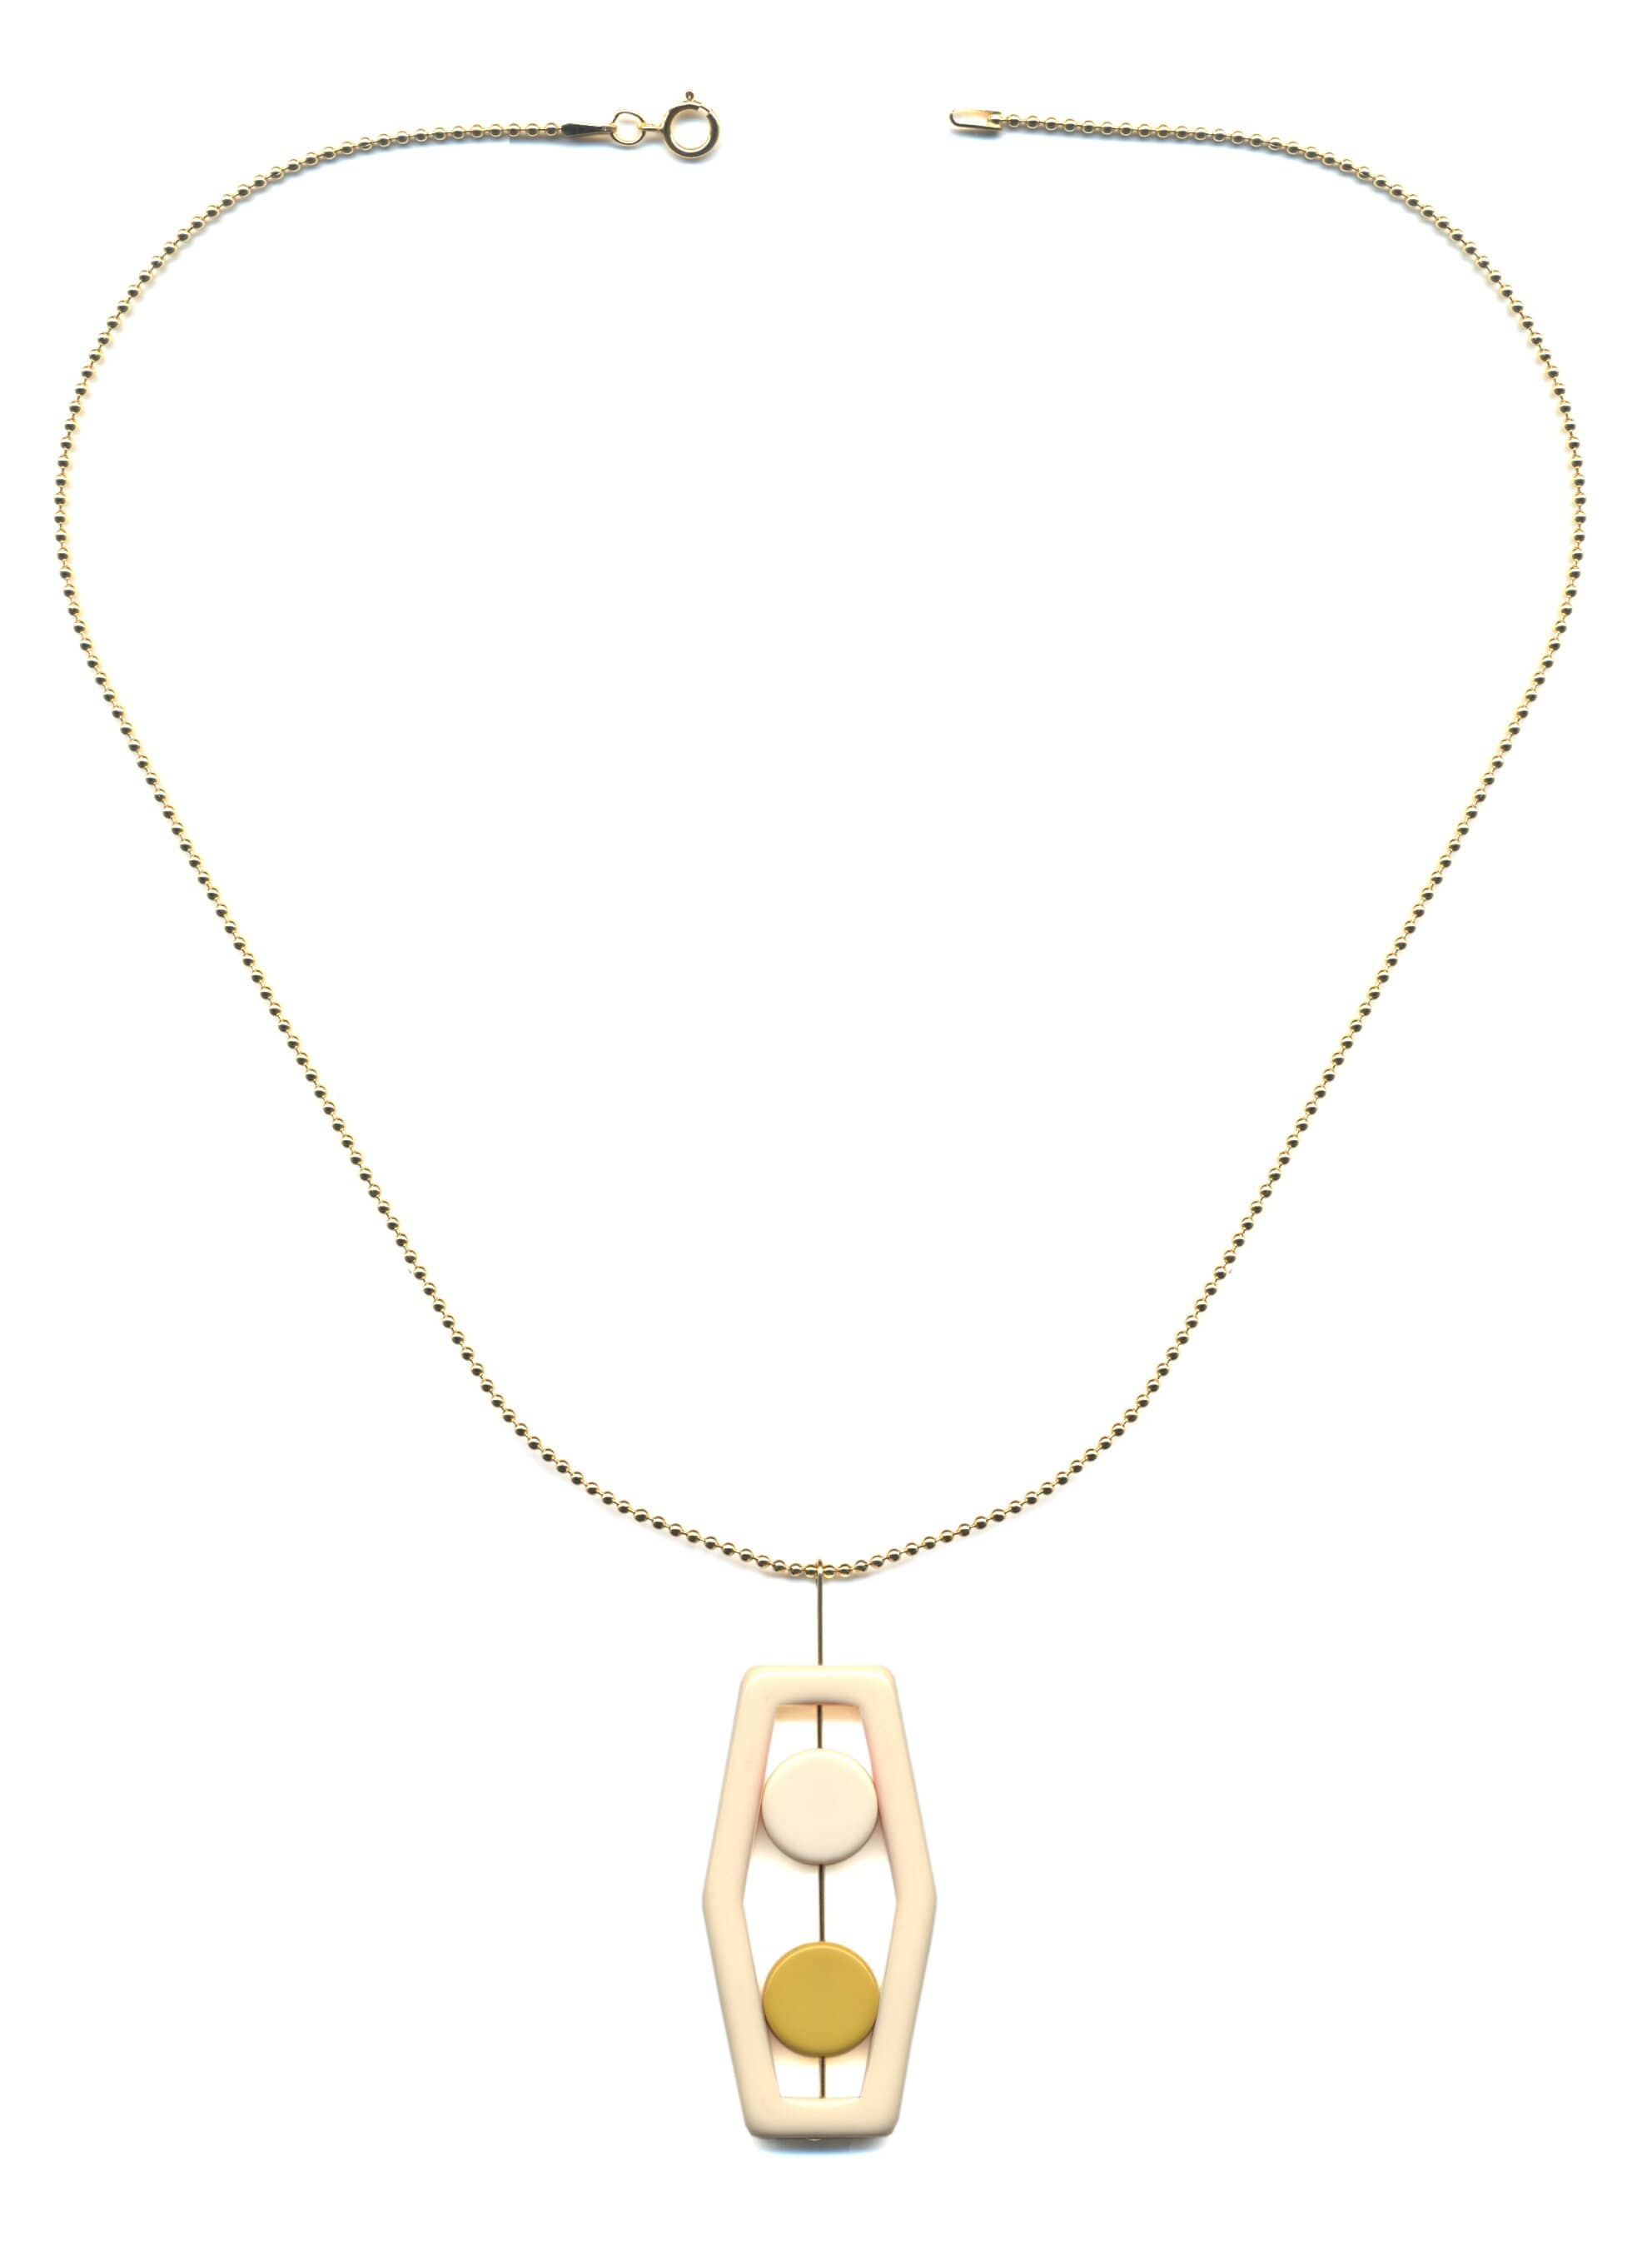 N1897 White Lantern - Yellow Glow Necklace